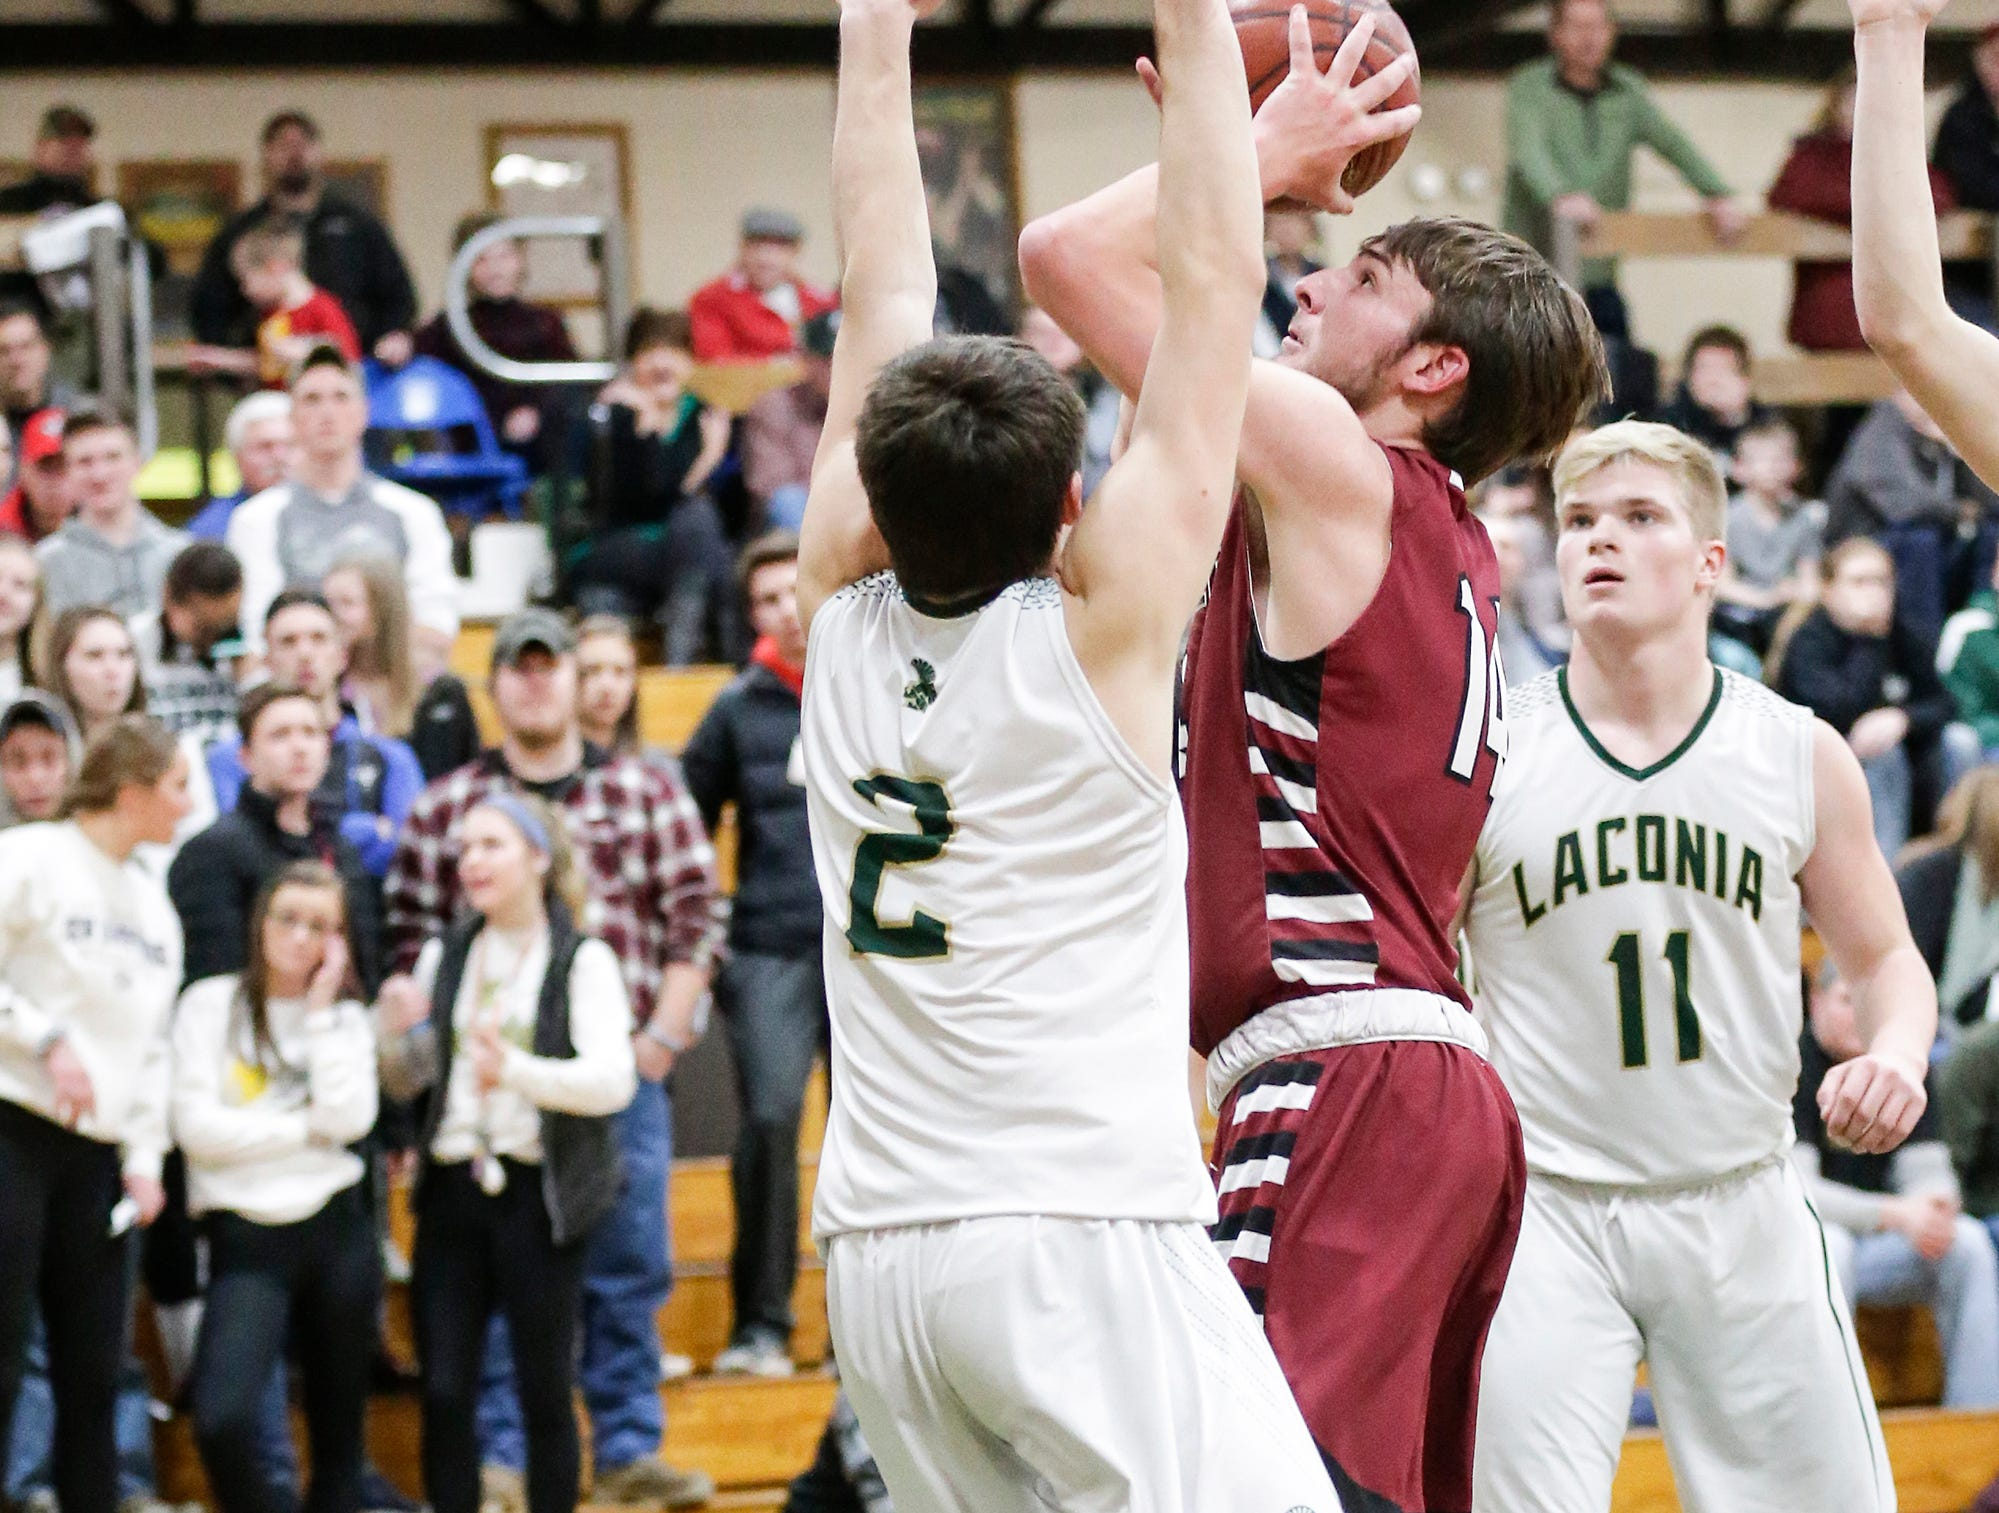 Mayville High School boys basketball's Tyler Gutjahr shoots over Laconia High School's Caden Wittchow during their game Friday, January 25, 2019 in Rosendale. Laconia won the game 80-54. Doug Raflik/USA TODAY NETWORK-Wisconsin